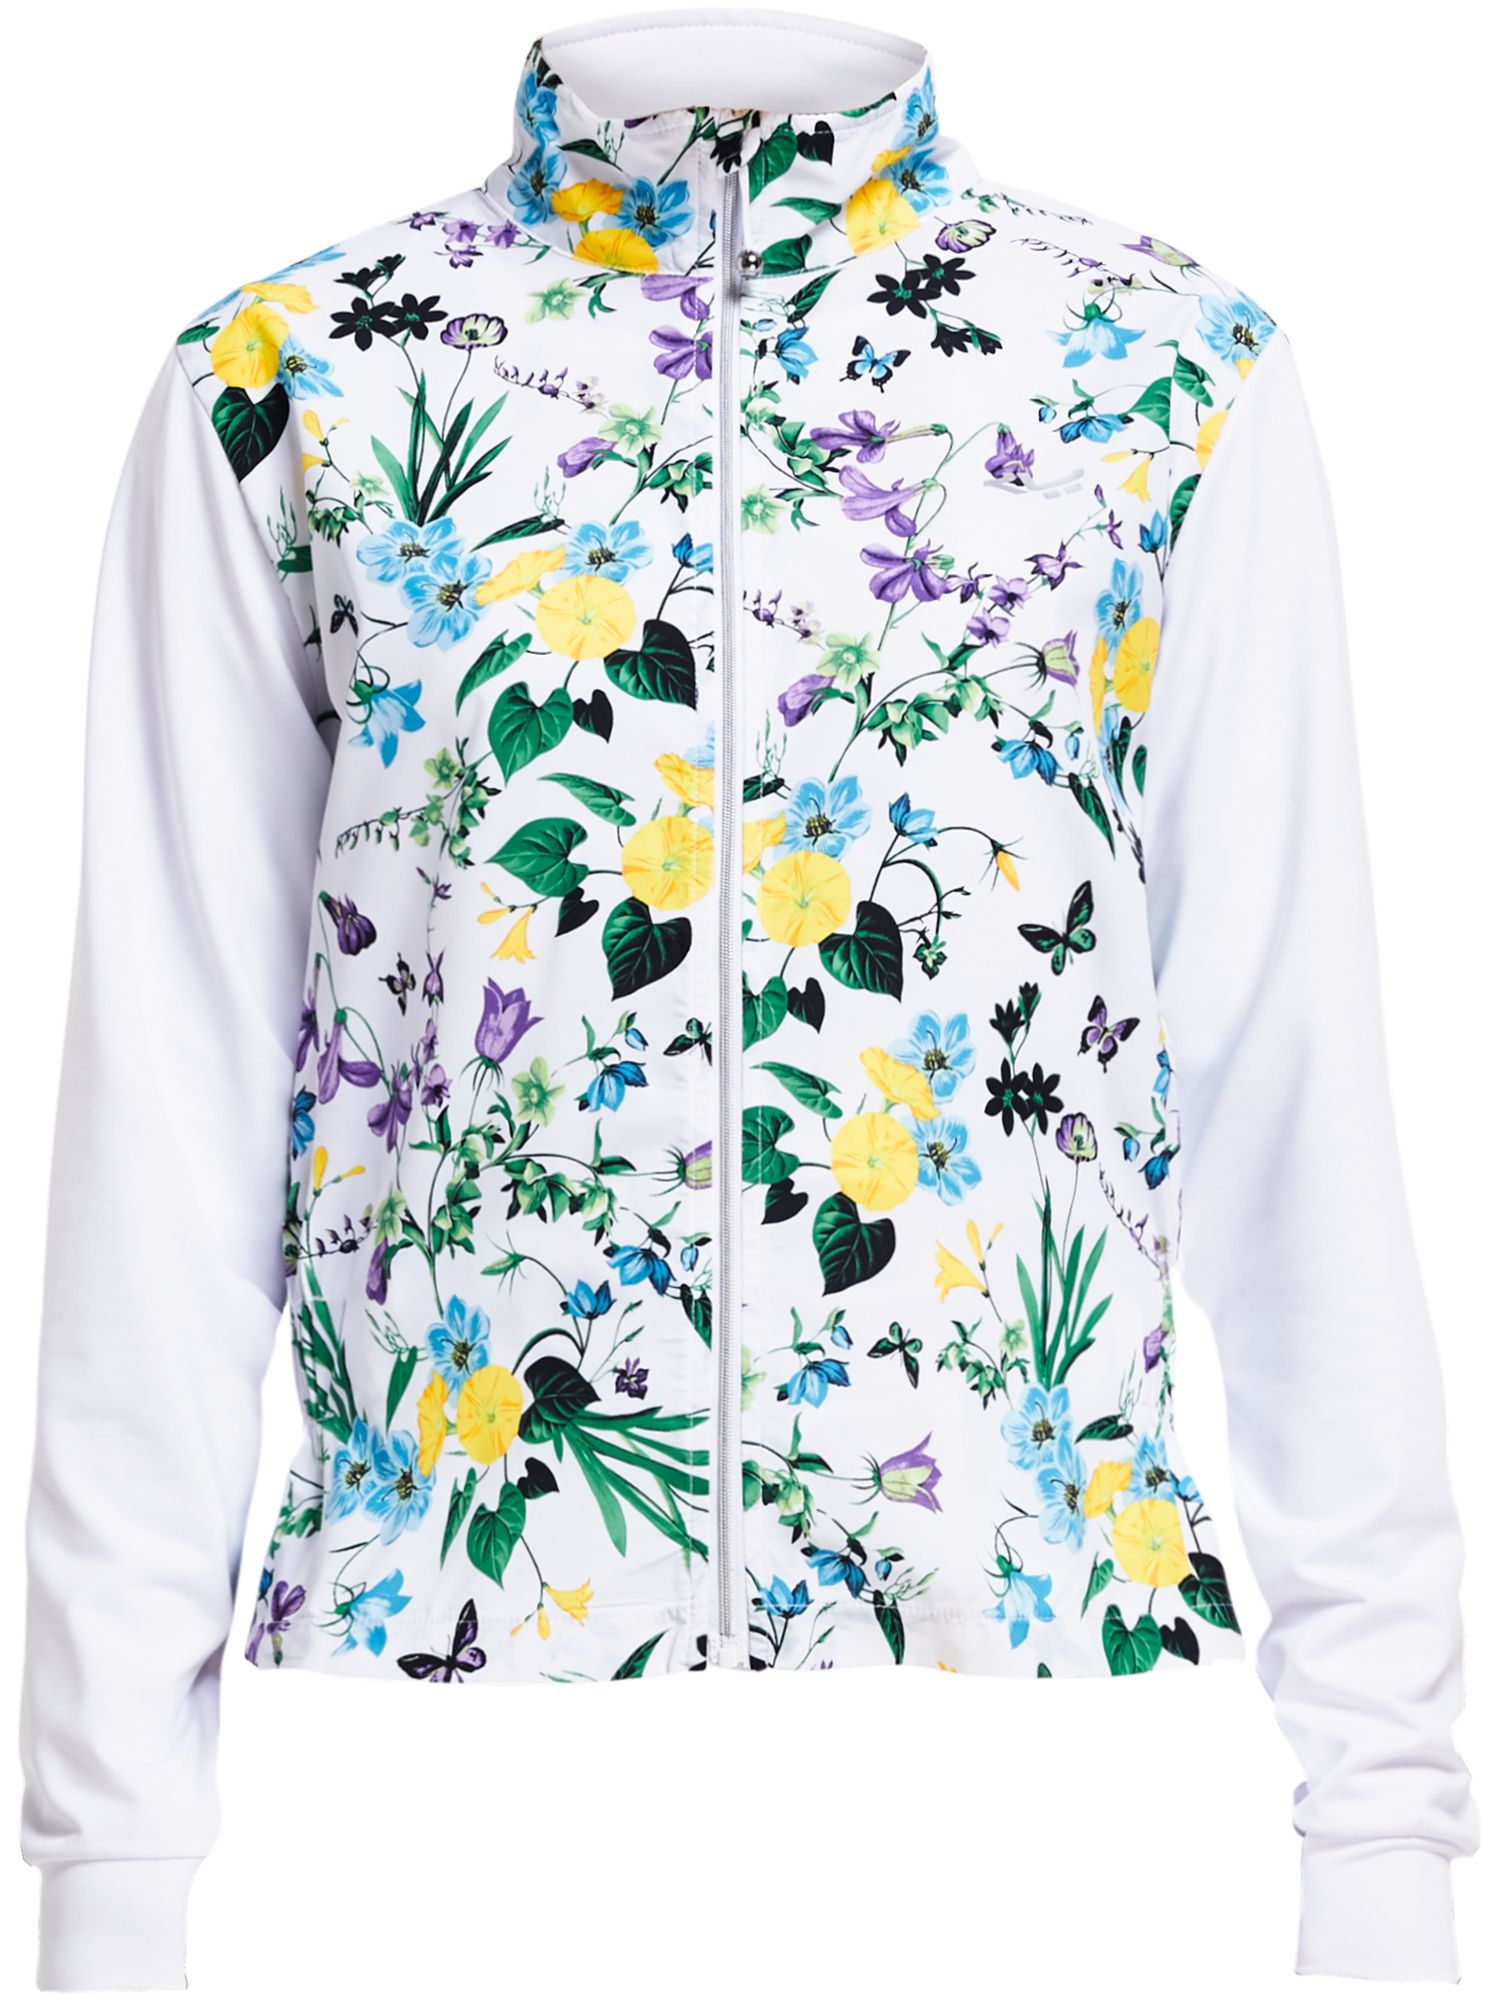 Rohnisch Cee Jacket, Multi-Coloured